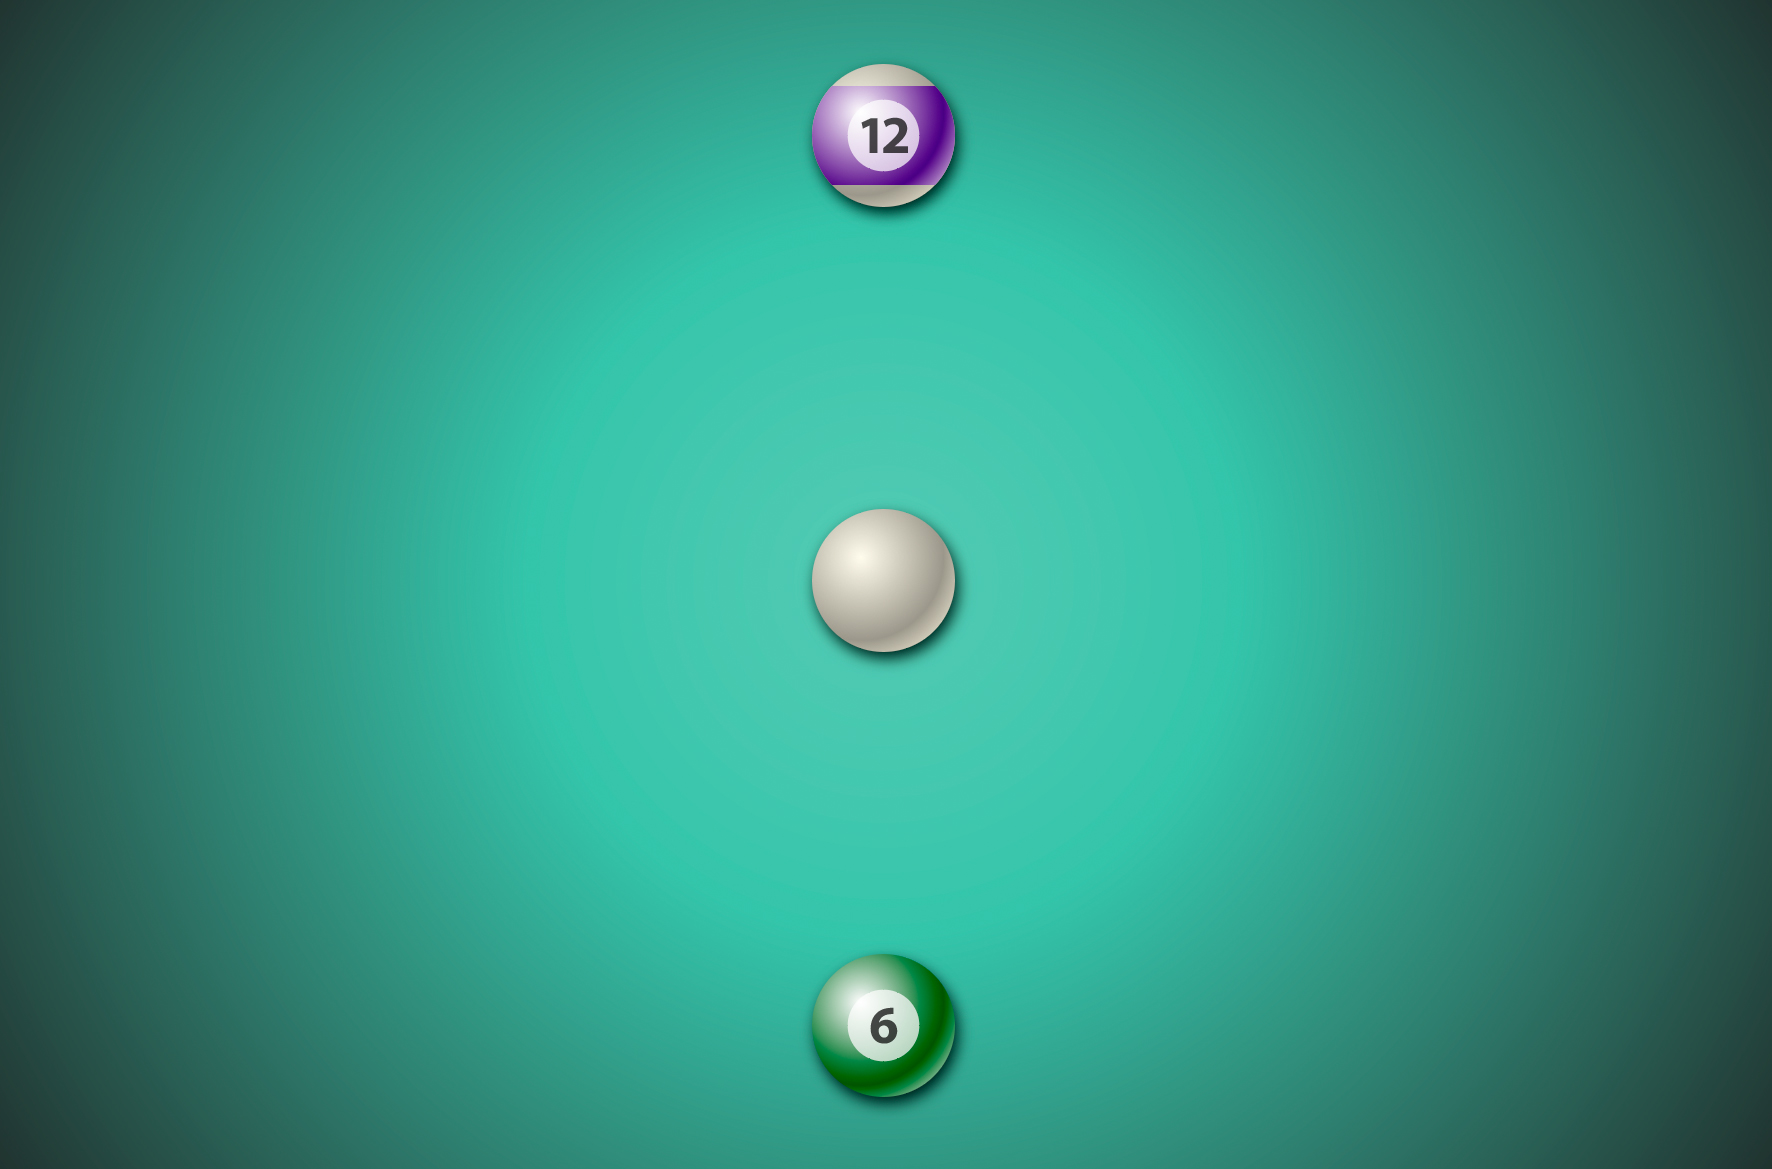 A green gradient with a 12, cue, and 6 ball on it.